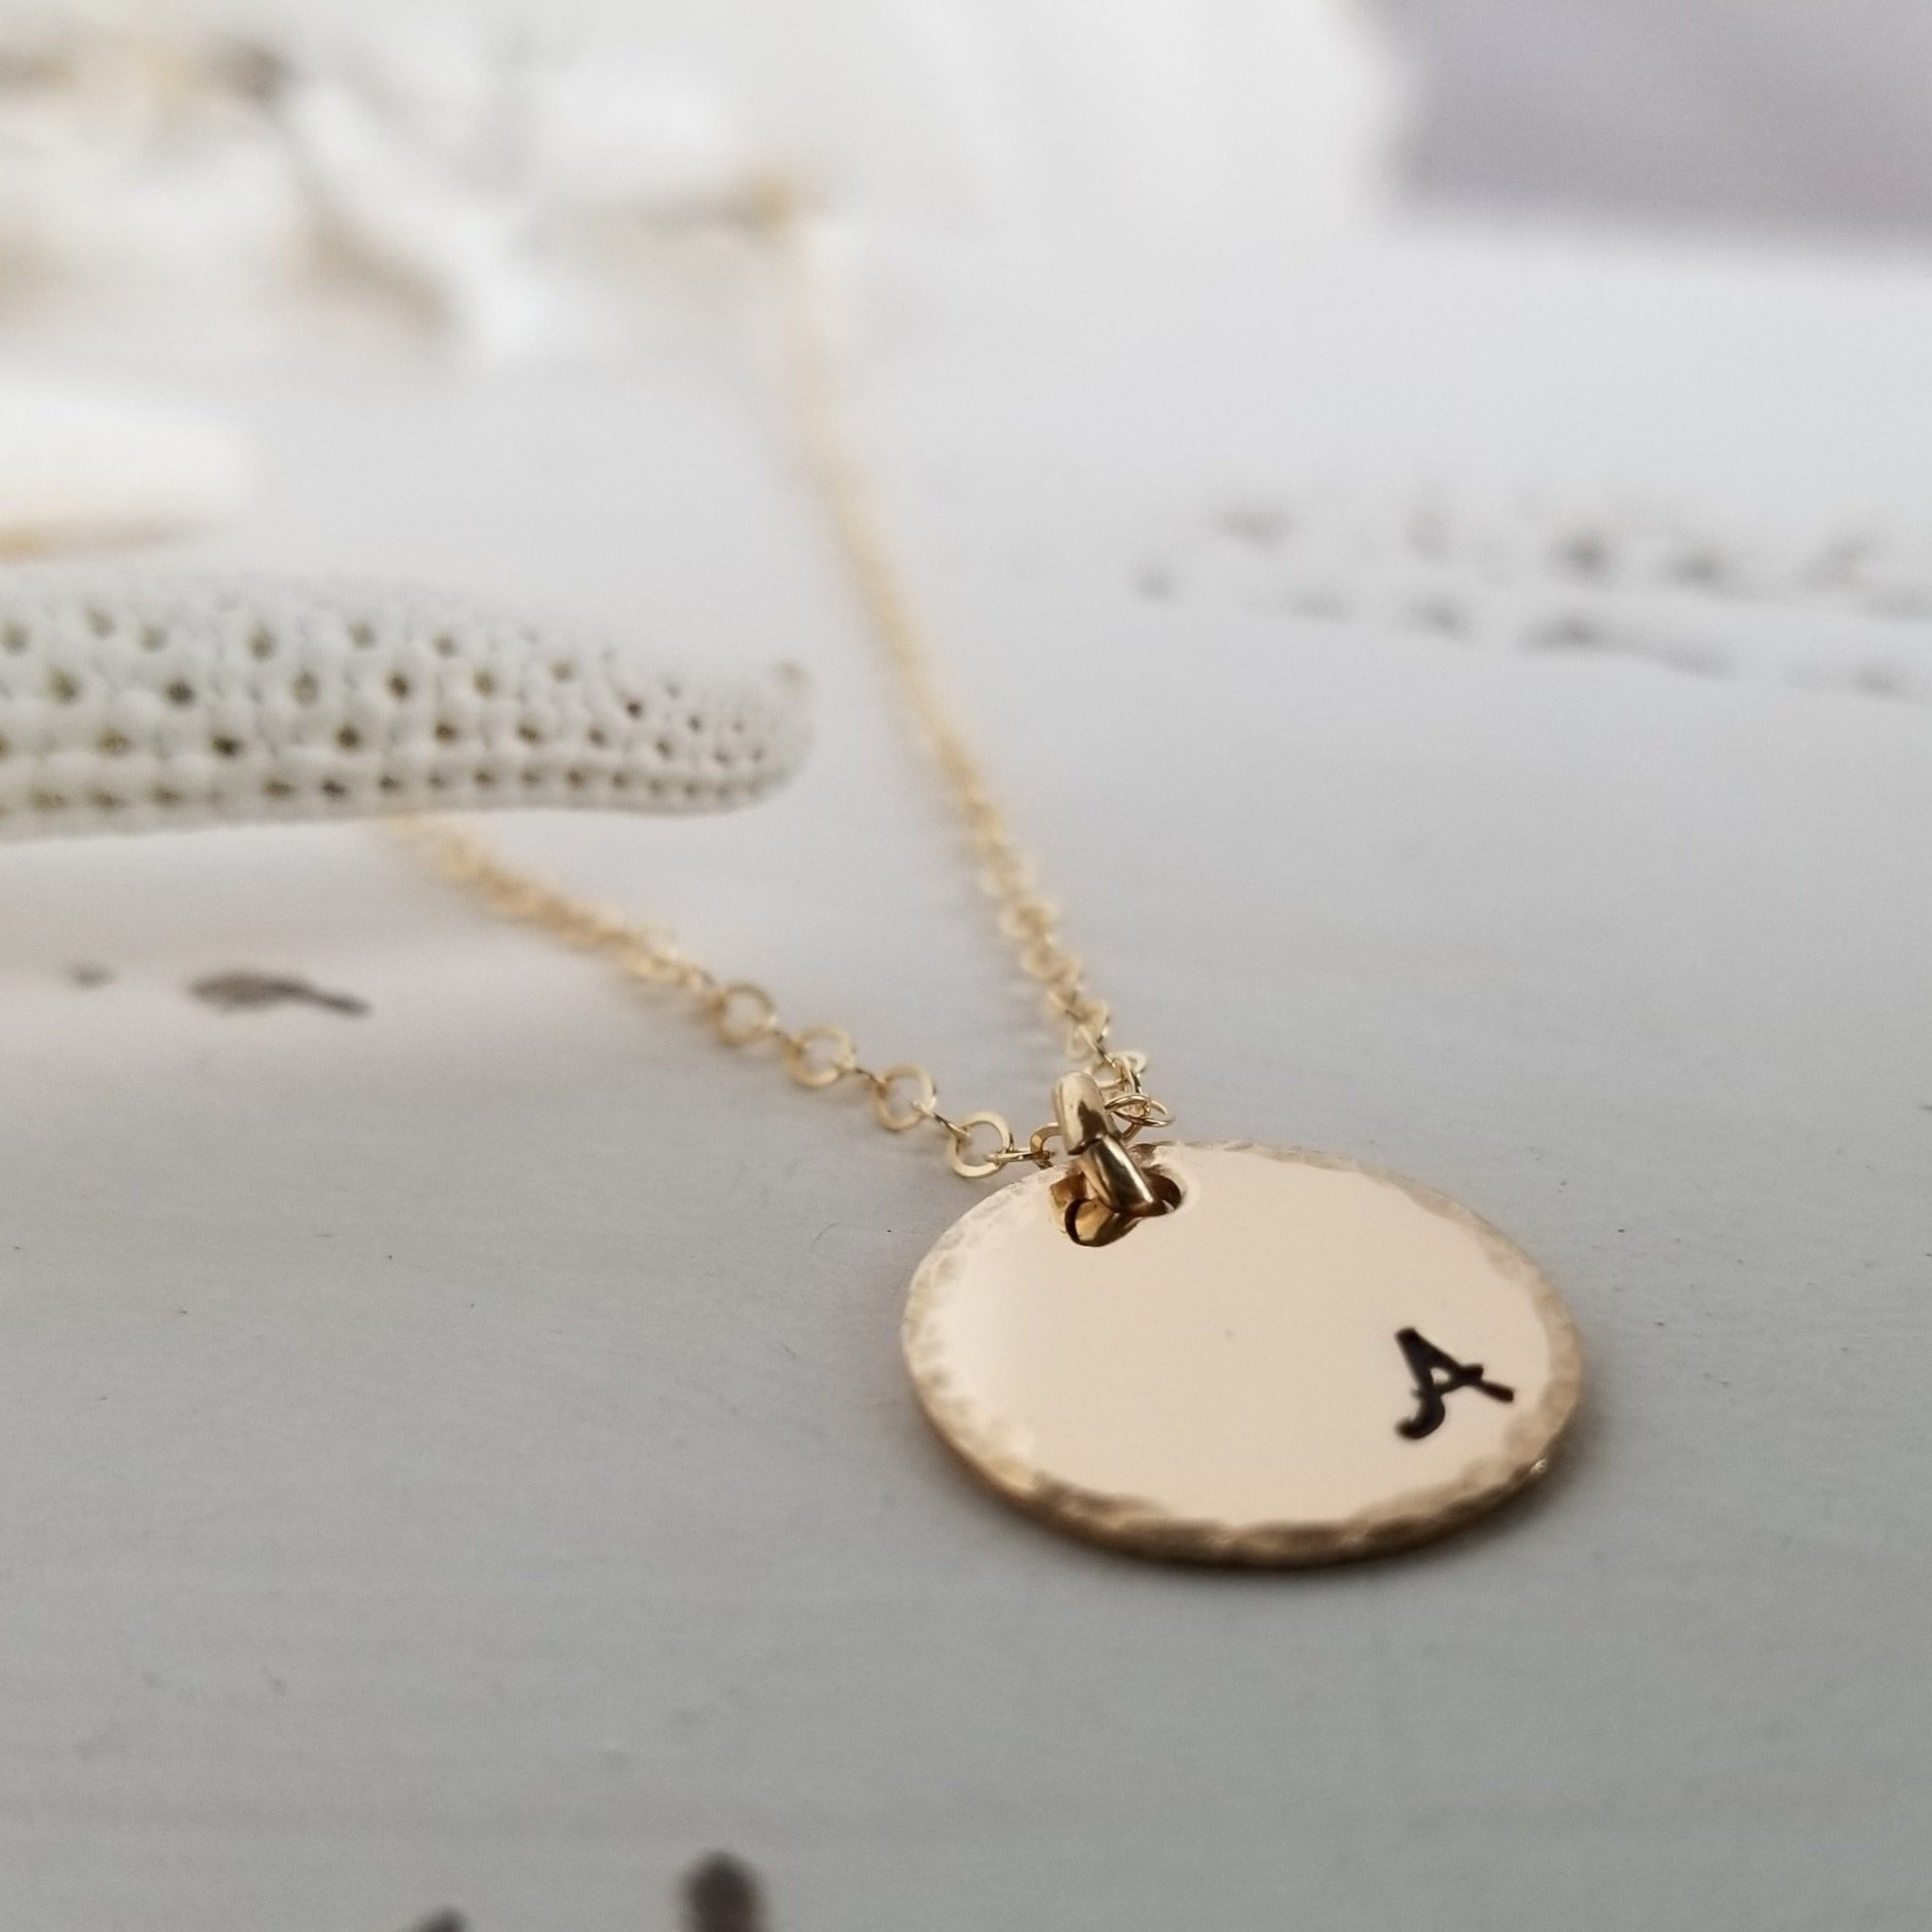 Custom Small Initial Necklace - 1/2 Inch - Sterling, Gold or Rose Gold